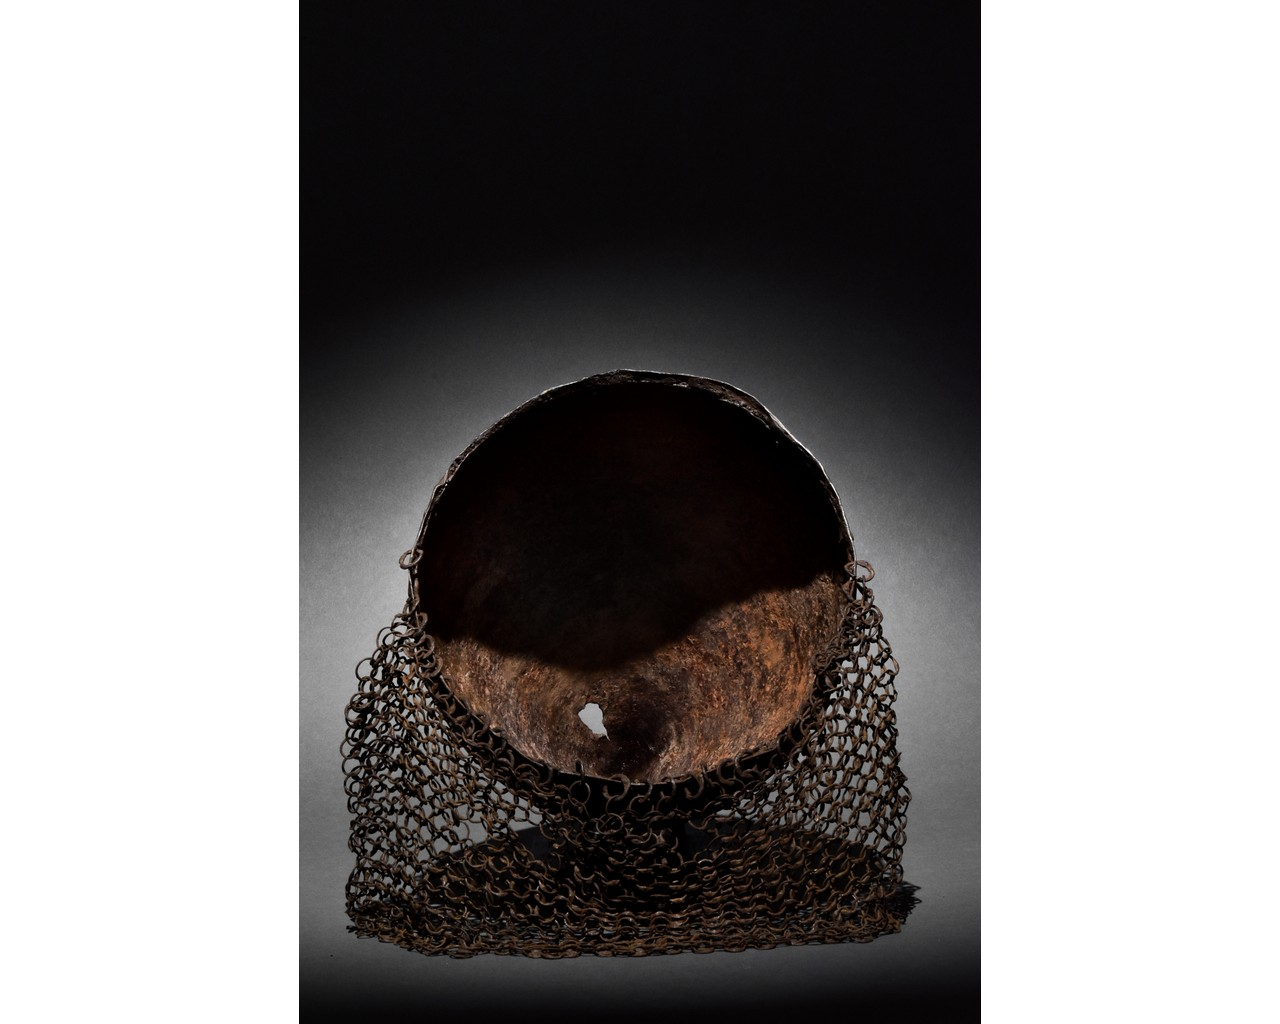 RARE MEDIEVAL HELMET WITH ORIGINAL CHAINMAIL - Image 5 of 6